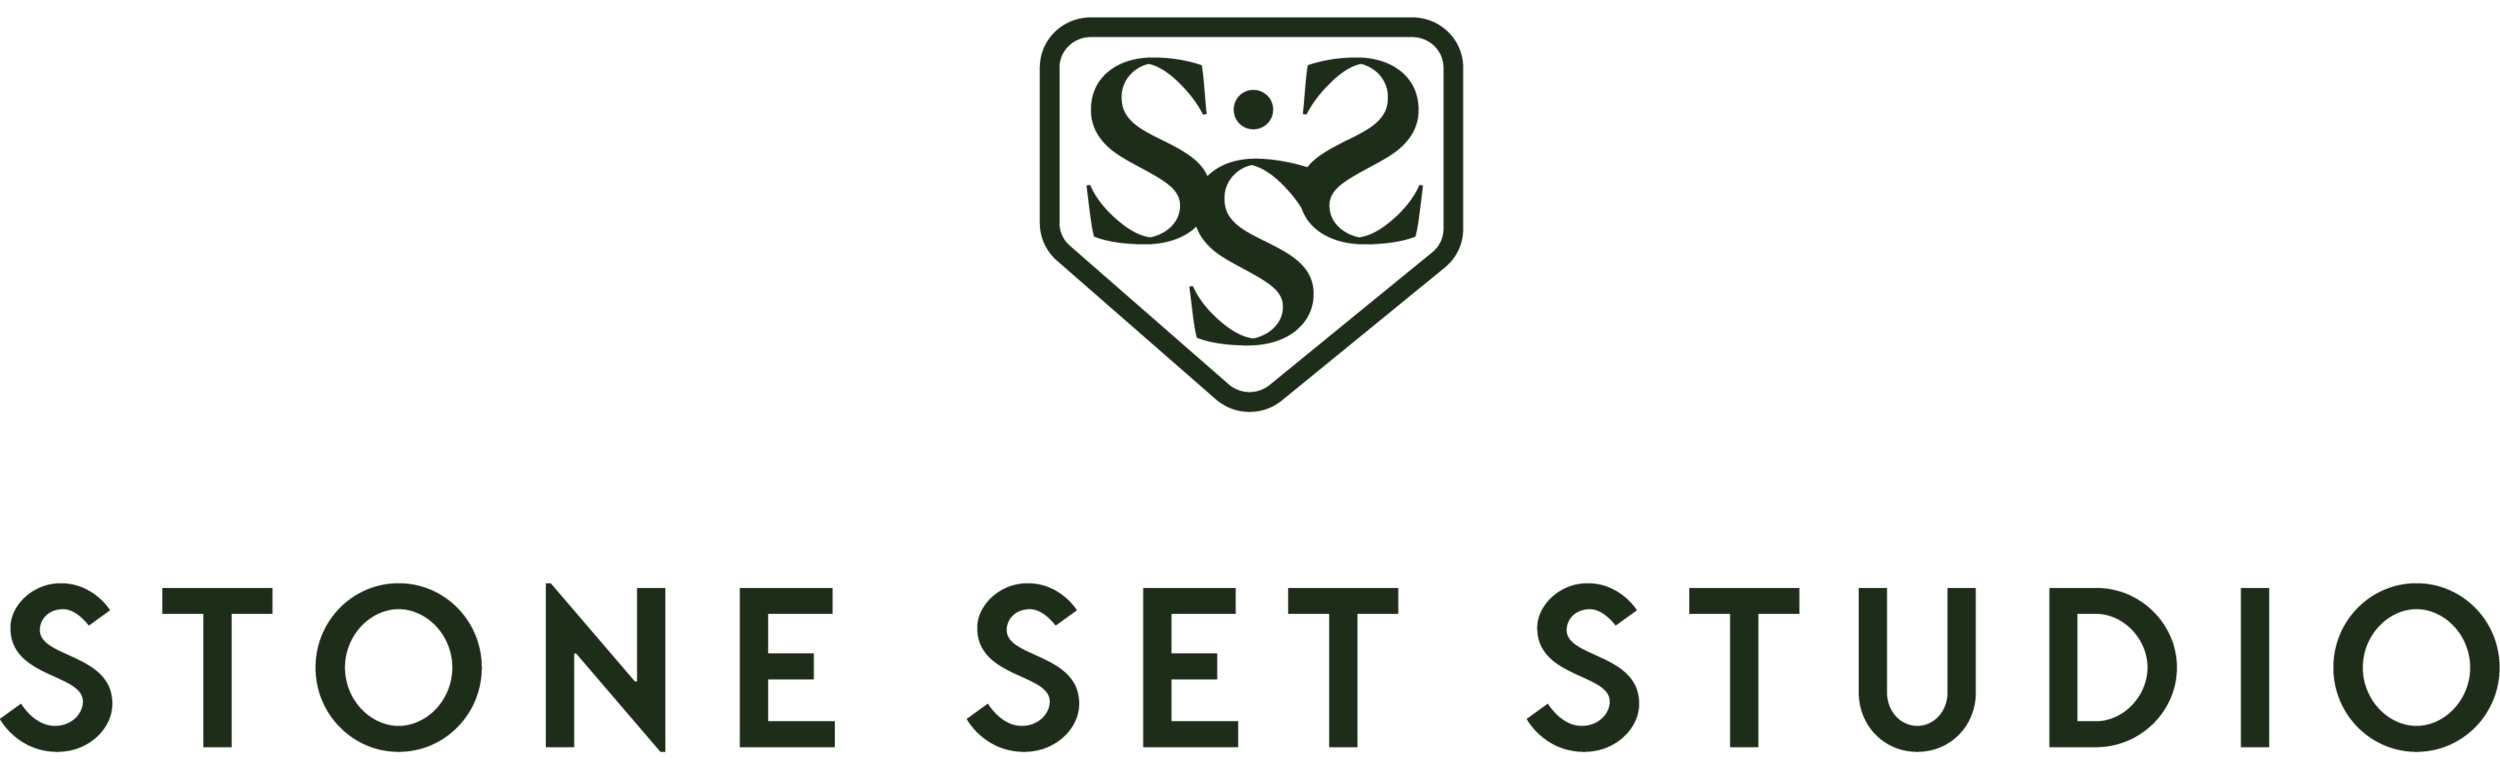 SSS_Stacked_Logo_Green.png